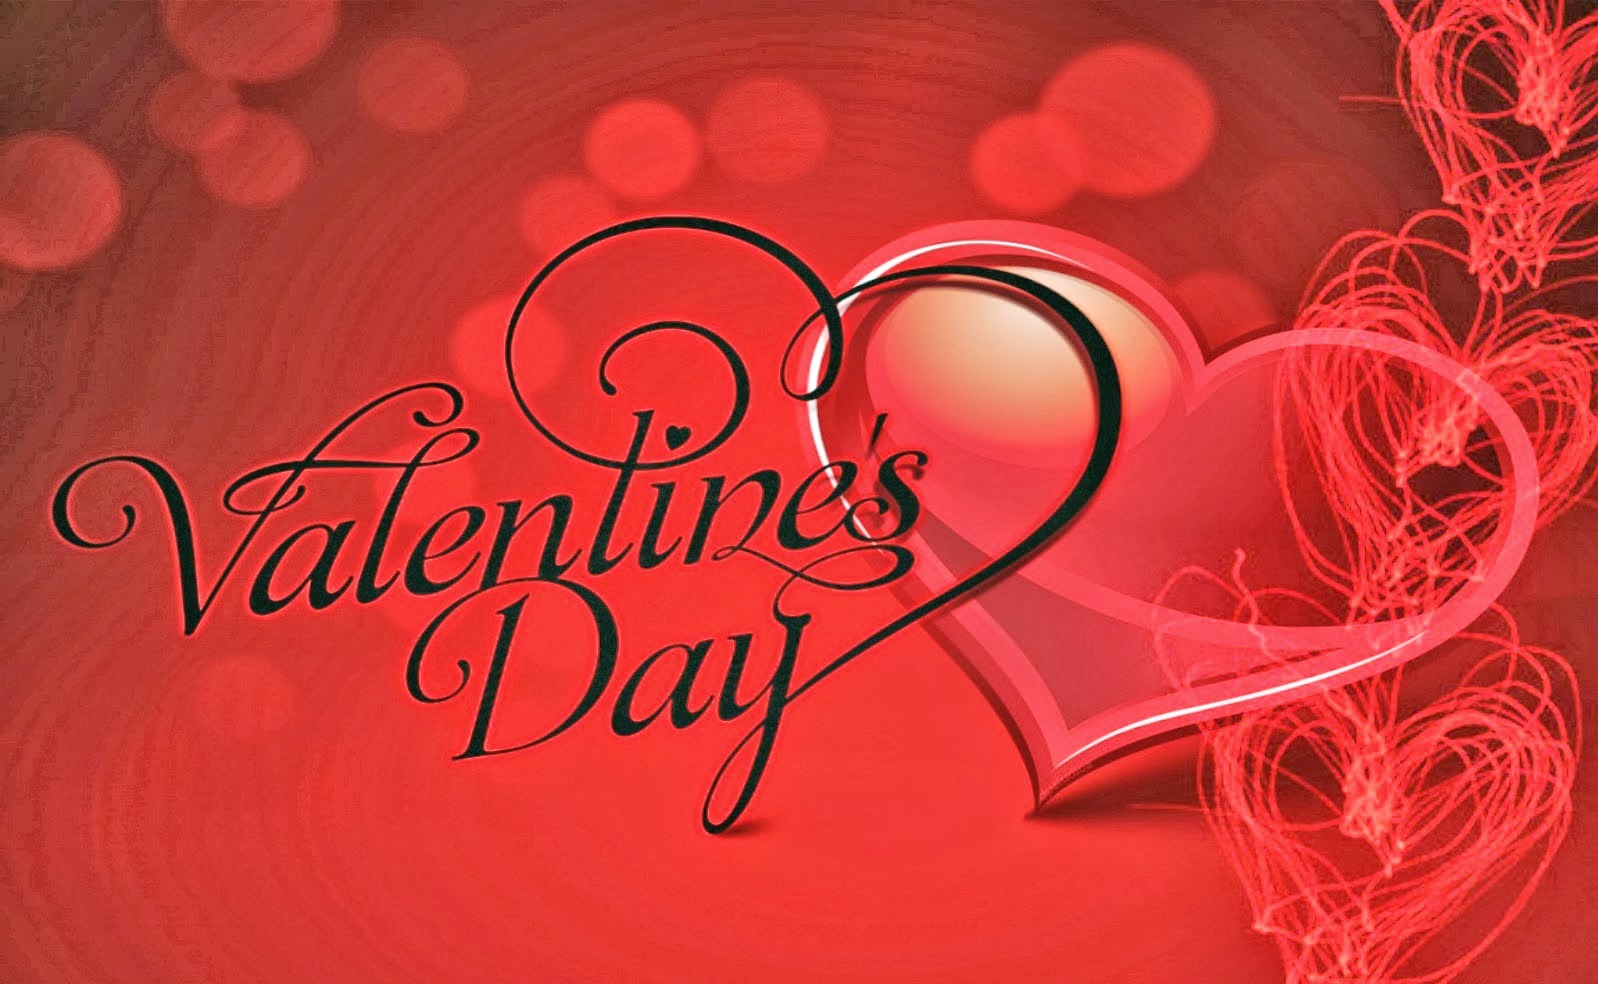 Peculiar Malayalam Download Messages Collection Category Day Valentine Day Photos Friends Valentines Day Photos photos Valentines Day Photos